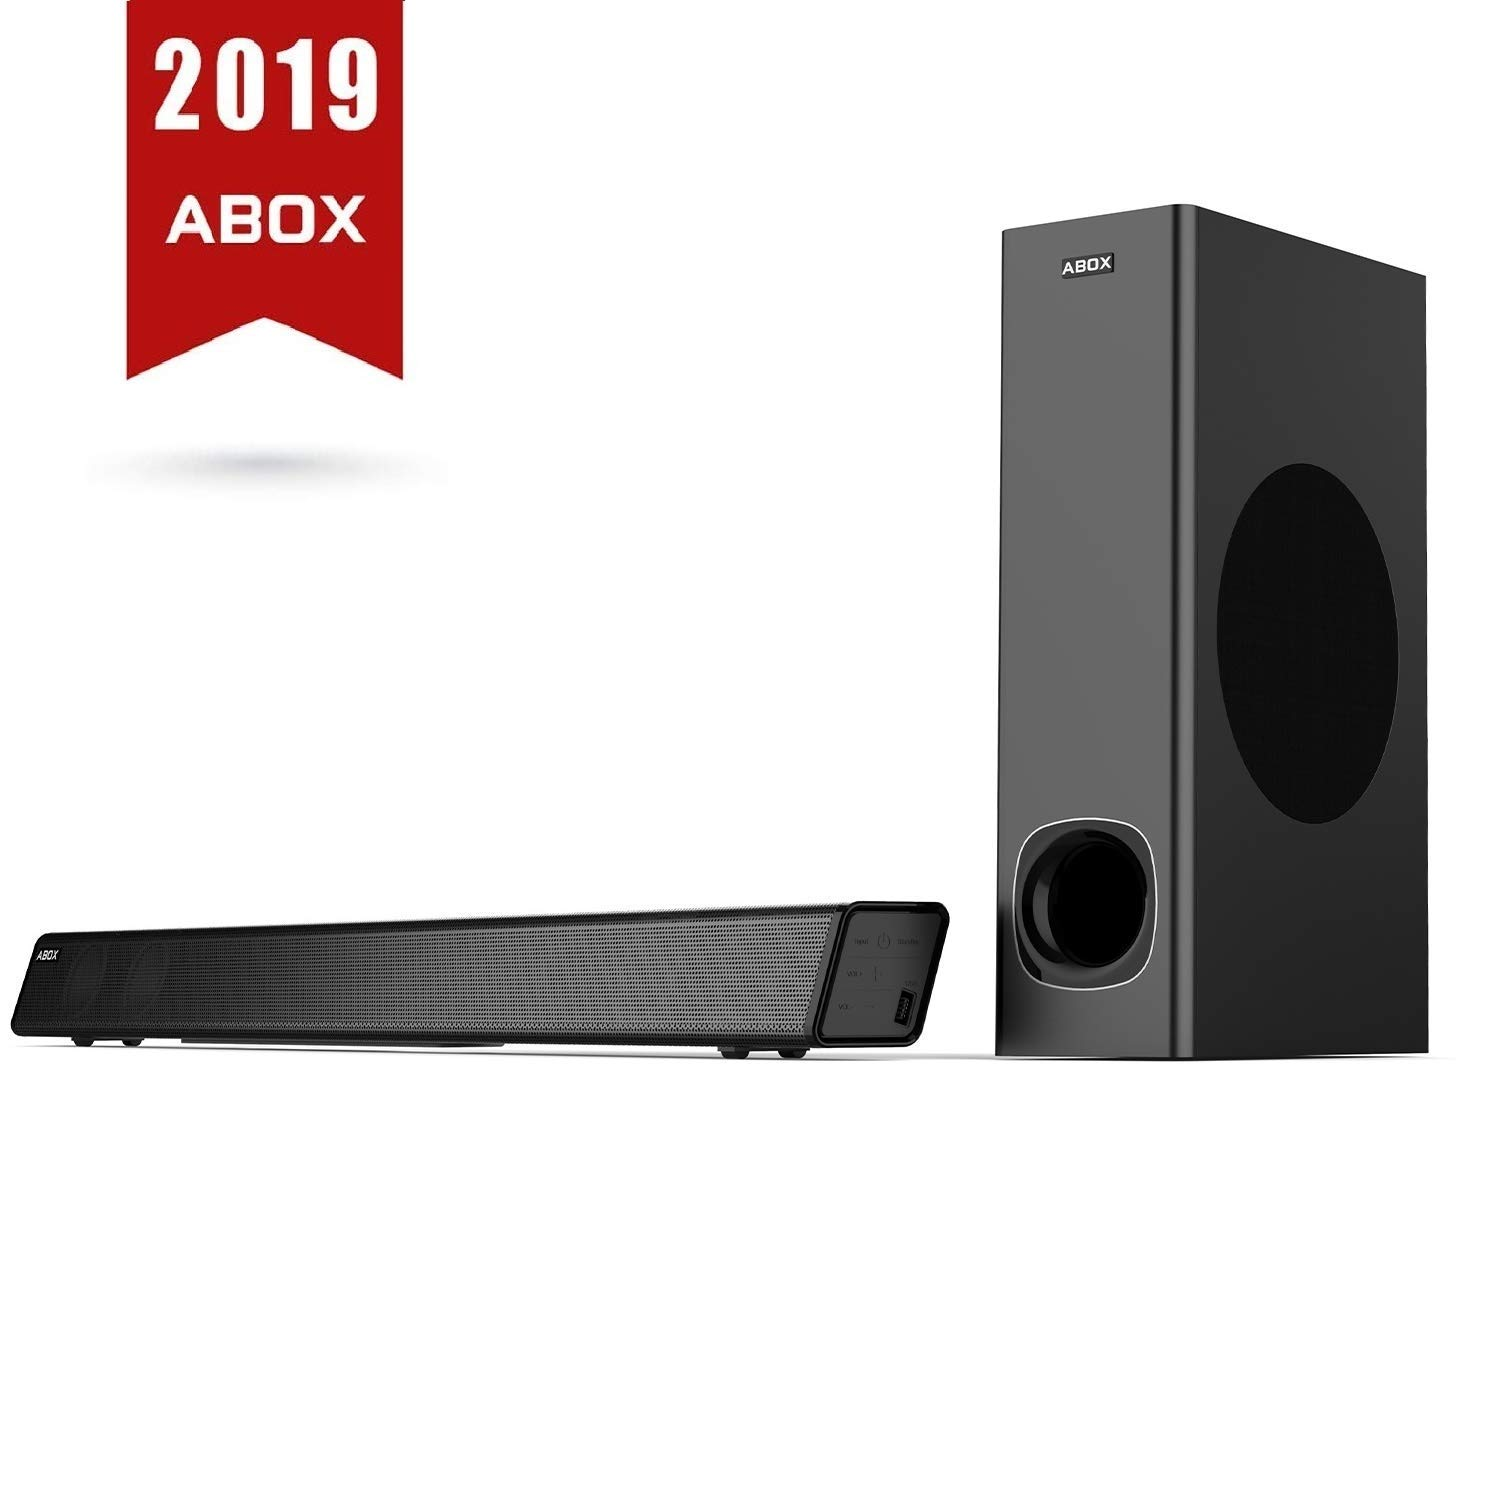 Sound Bar with Subwoofer, ABOX Soundbar for TV 34 Inch 120W 2.1 Channel Speaker, Wireless & Wired Bluetooth 4.2 Sound Bars, Home Theater Surround Sound, Touch and Remote Control, Wall Mountable by GooBang Doo (Image #1)